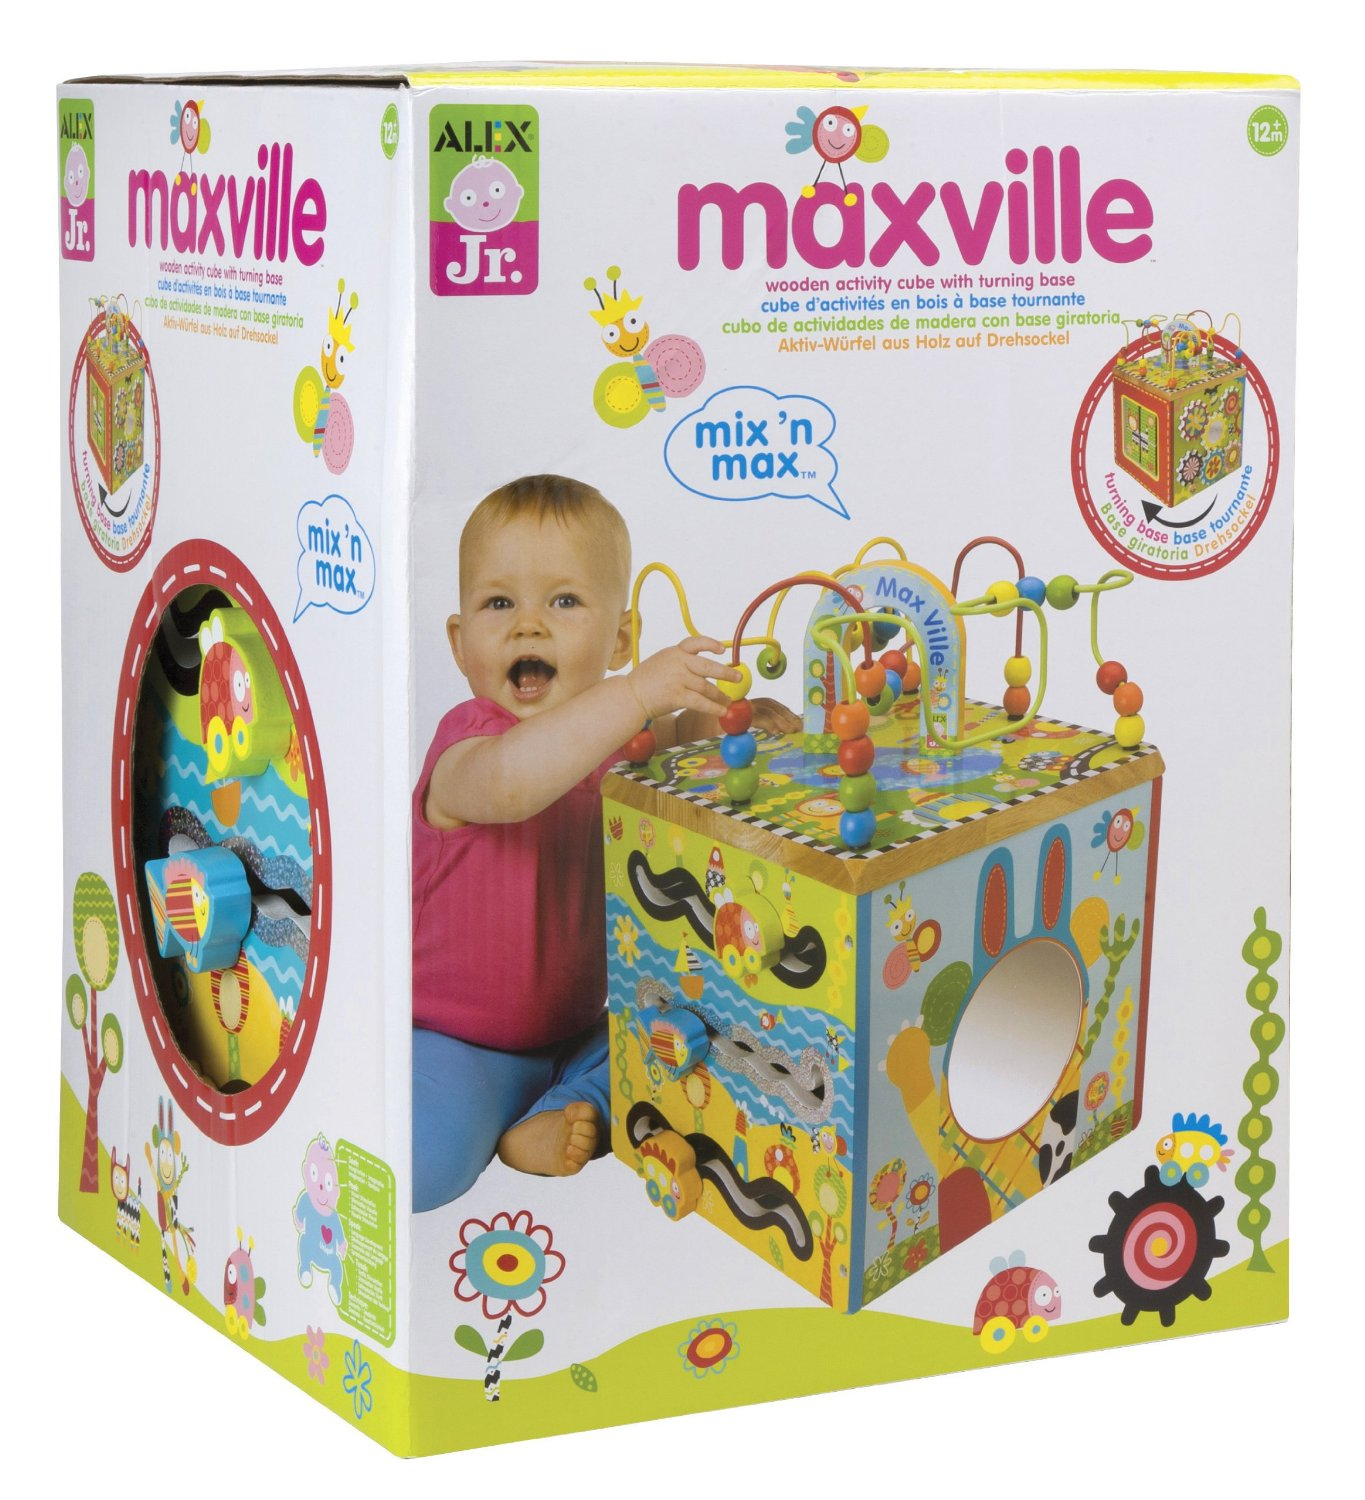 Maxville Activity Centre from Alex Toys